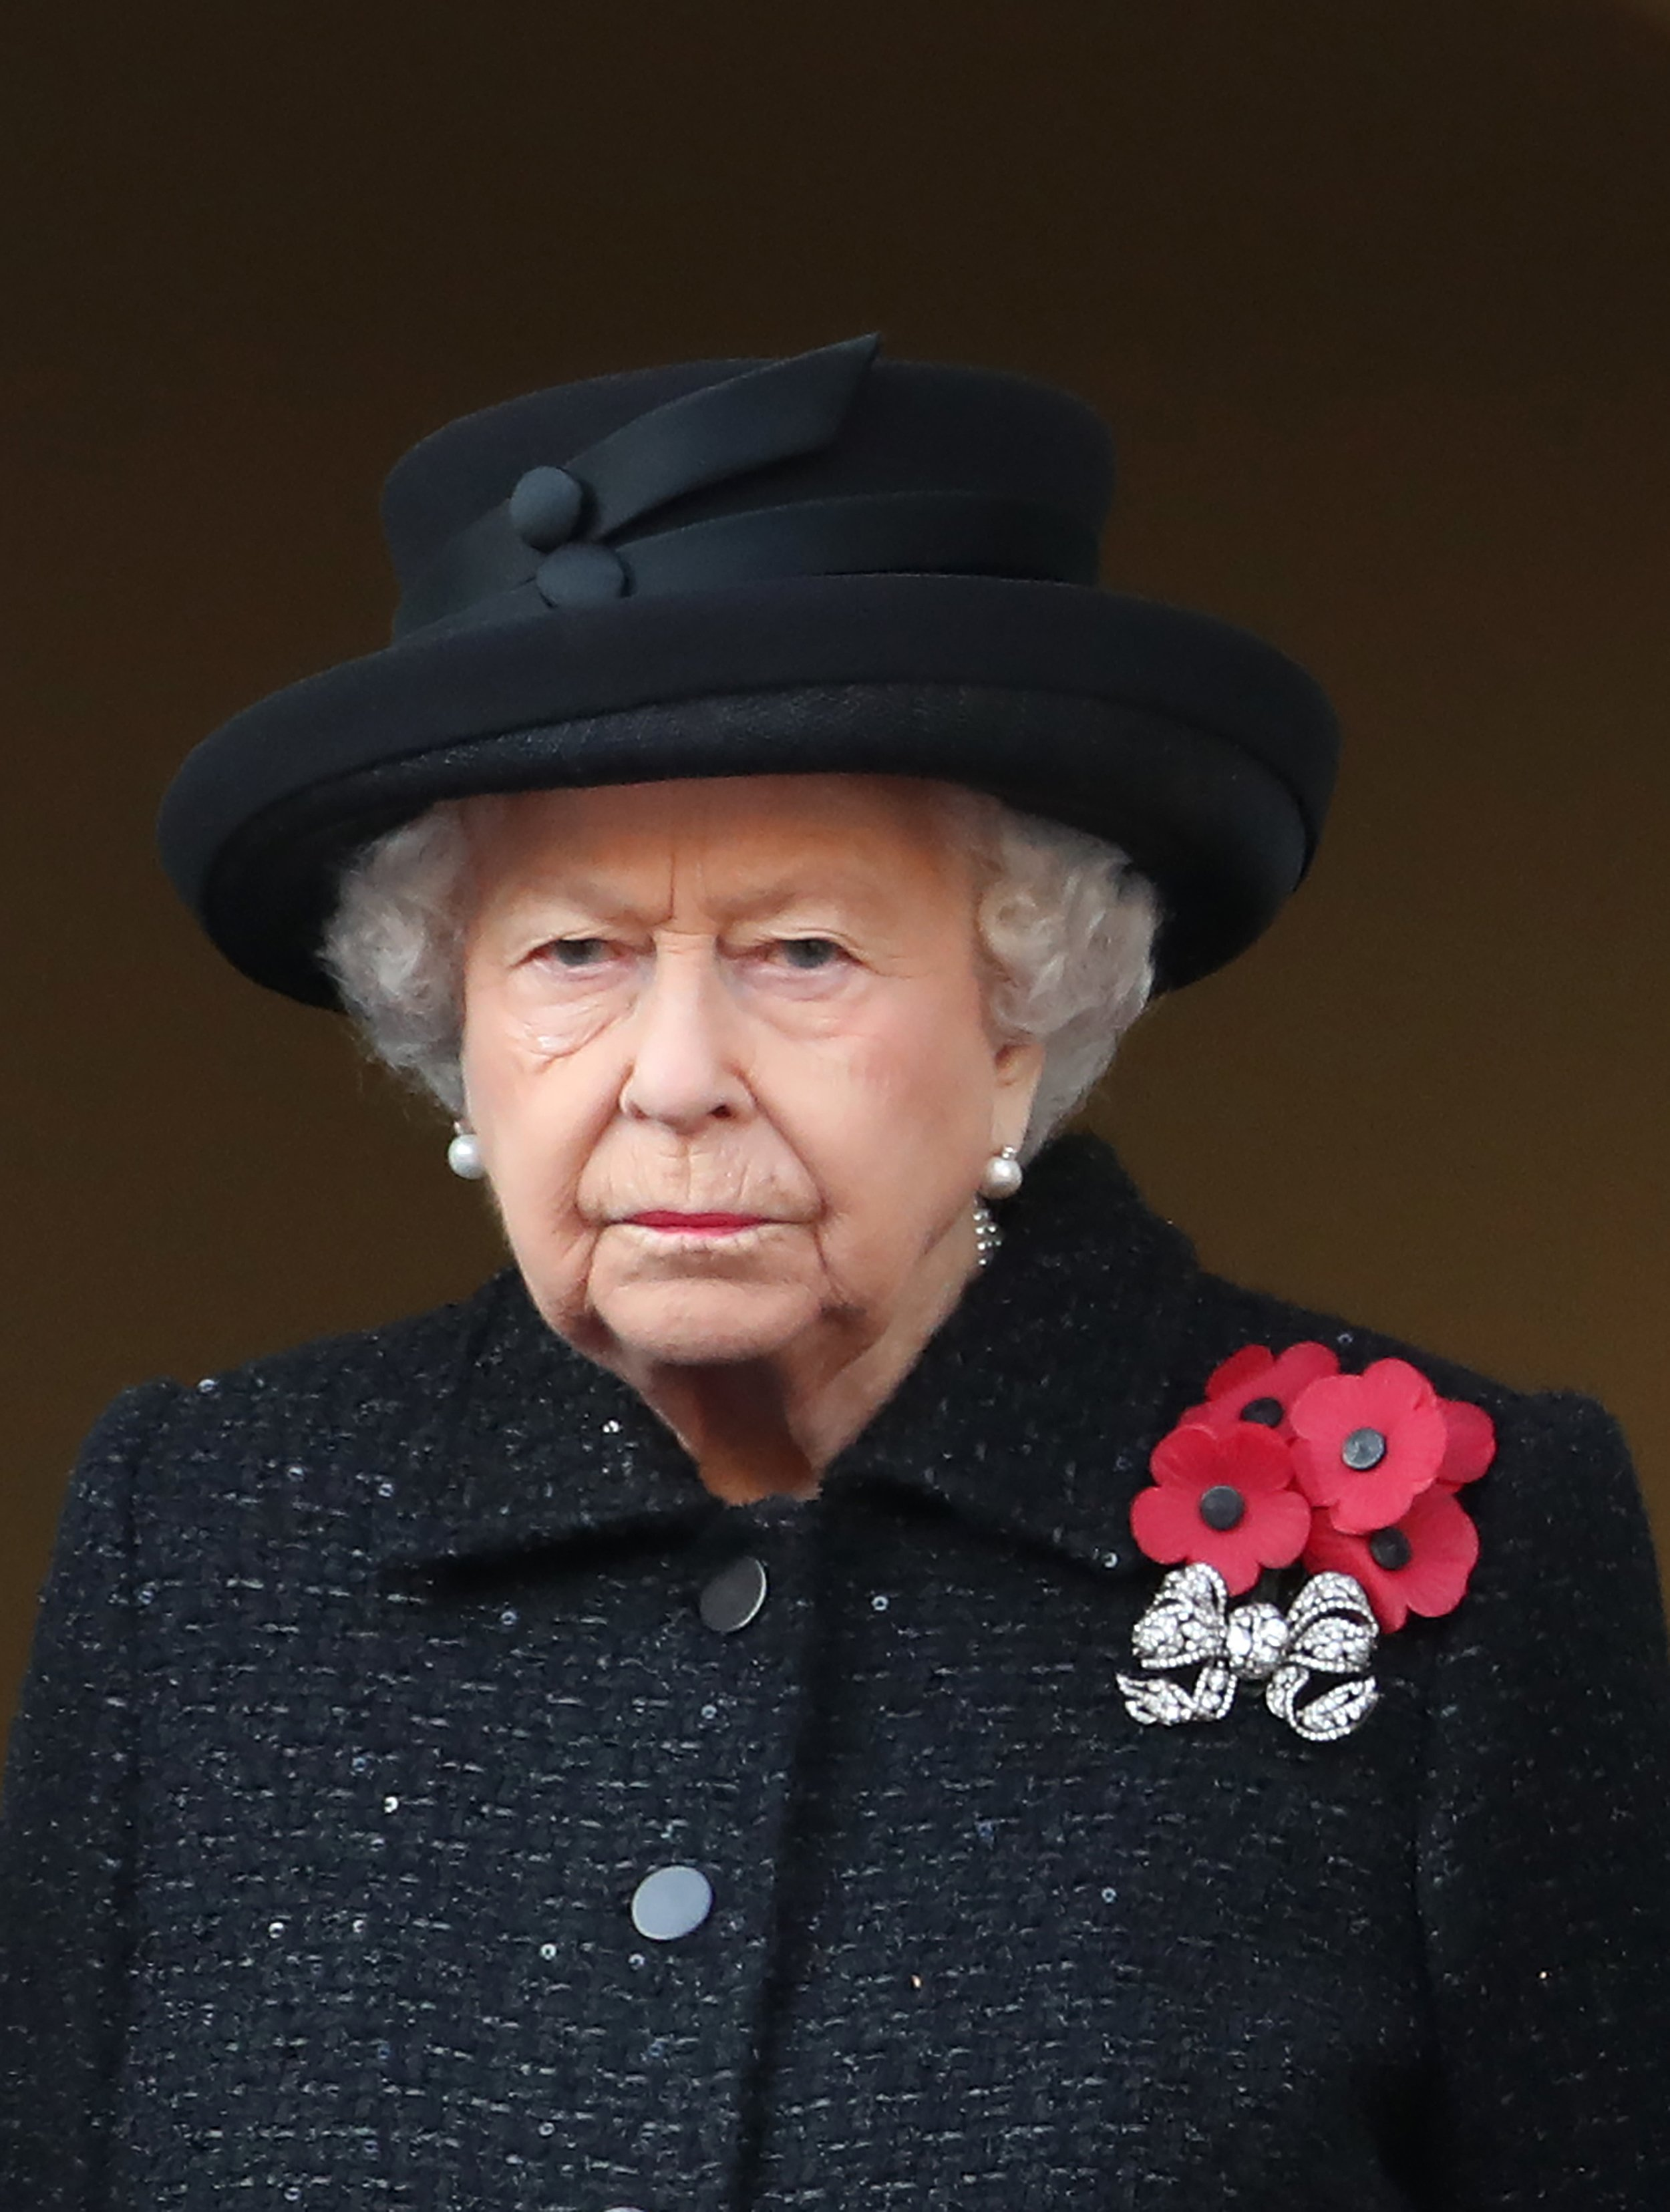 Queen Elizabeth II at the annual Remembrance Sunday memorial at The Cenotaph on November 10, 2019, in London, England | Photo: Getty Images